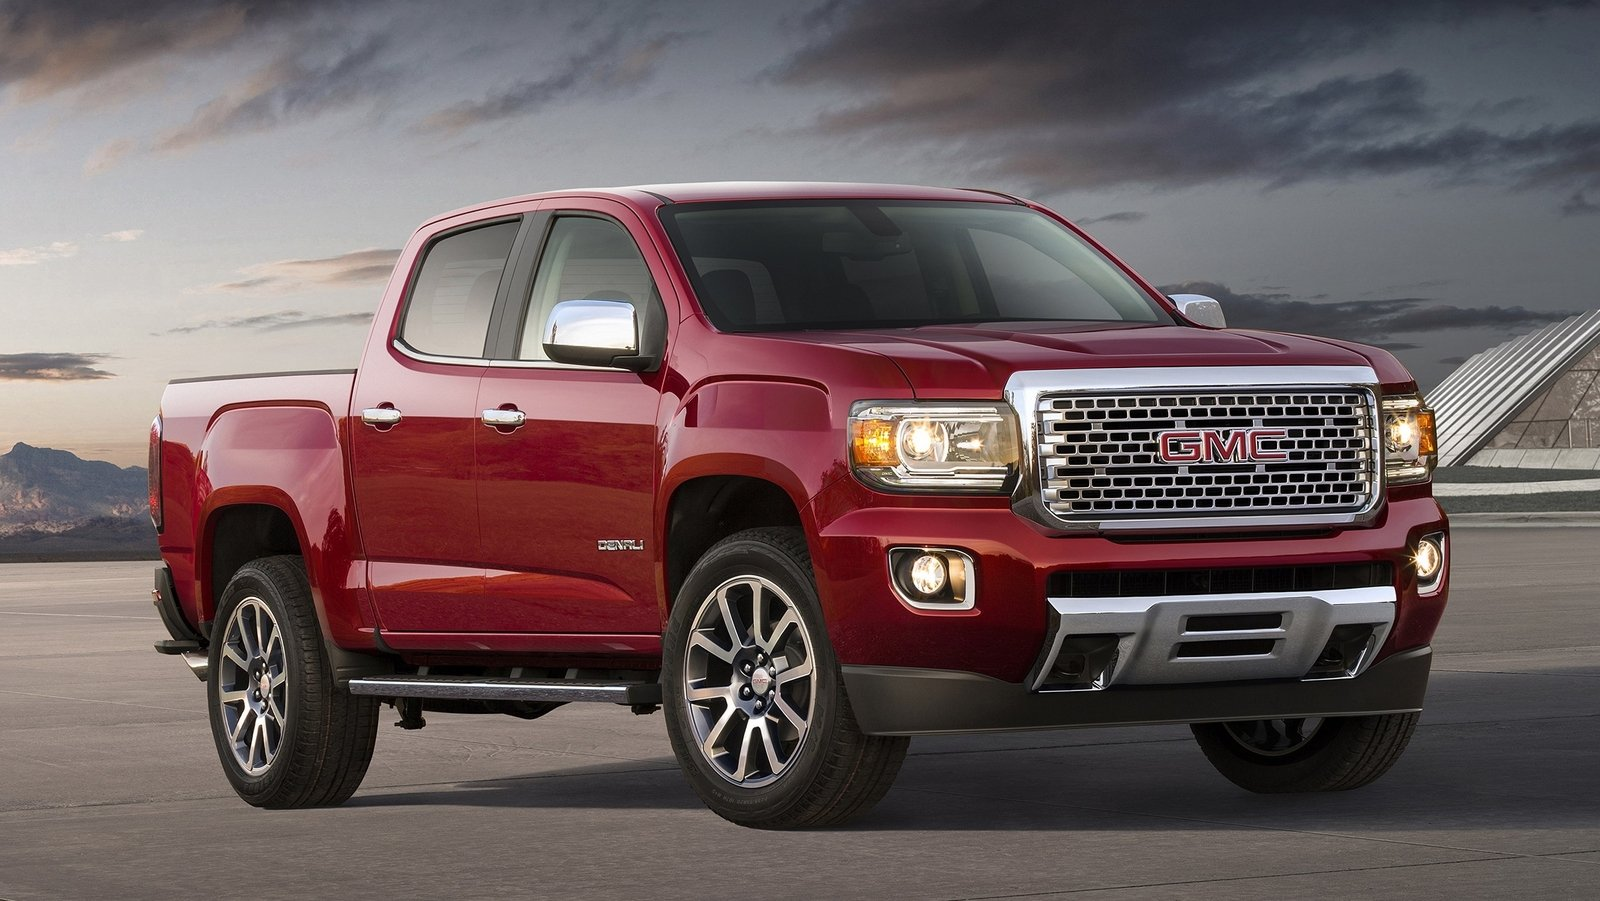 2017 GMC Canyon Denali - Picture 655844 | truck review ...